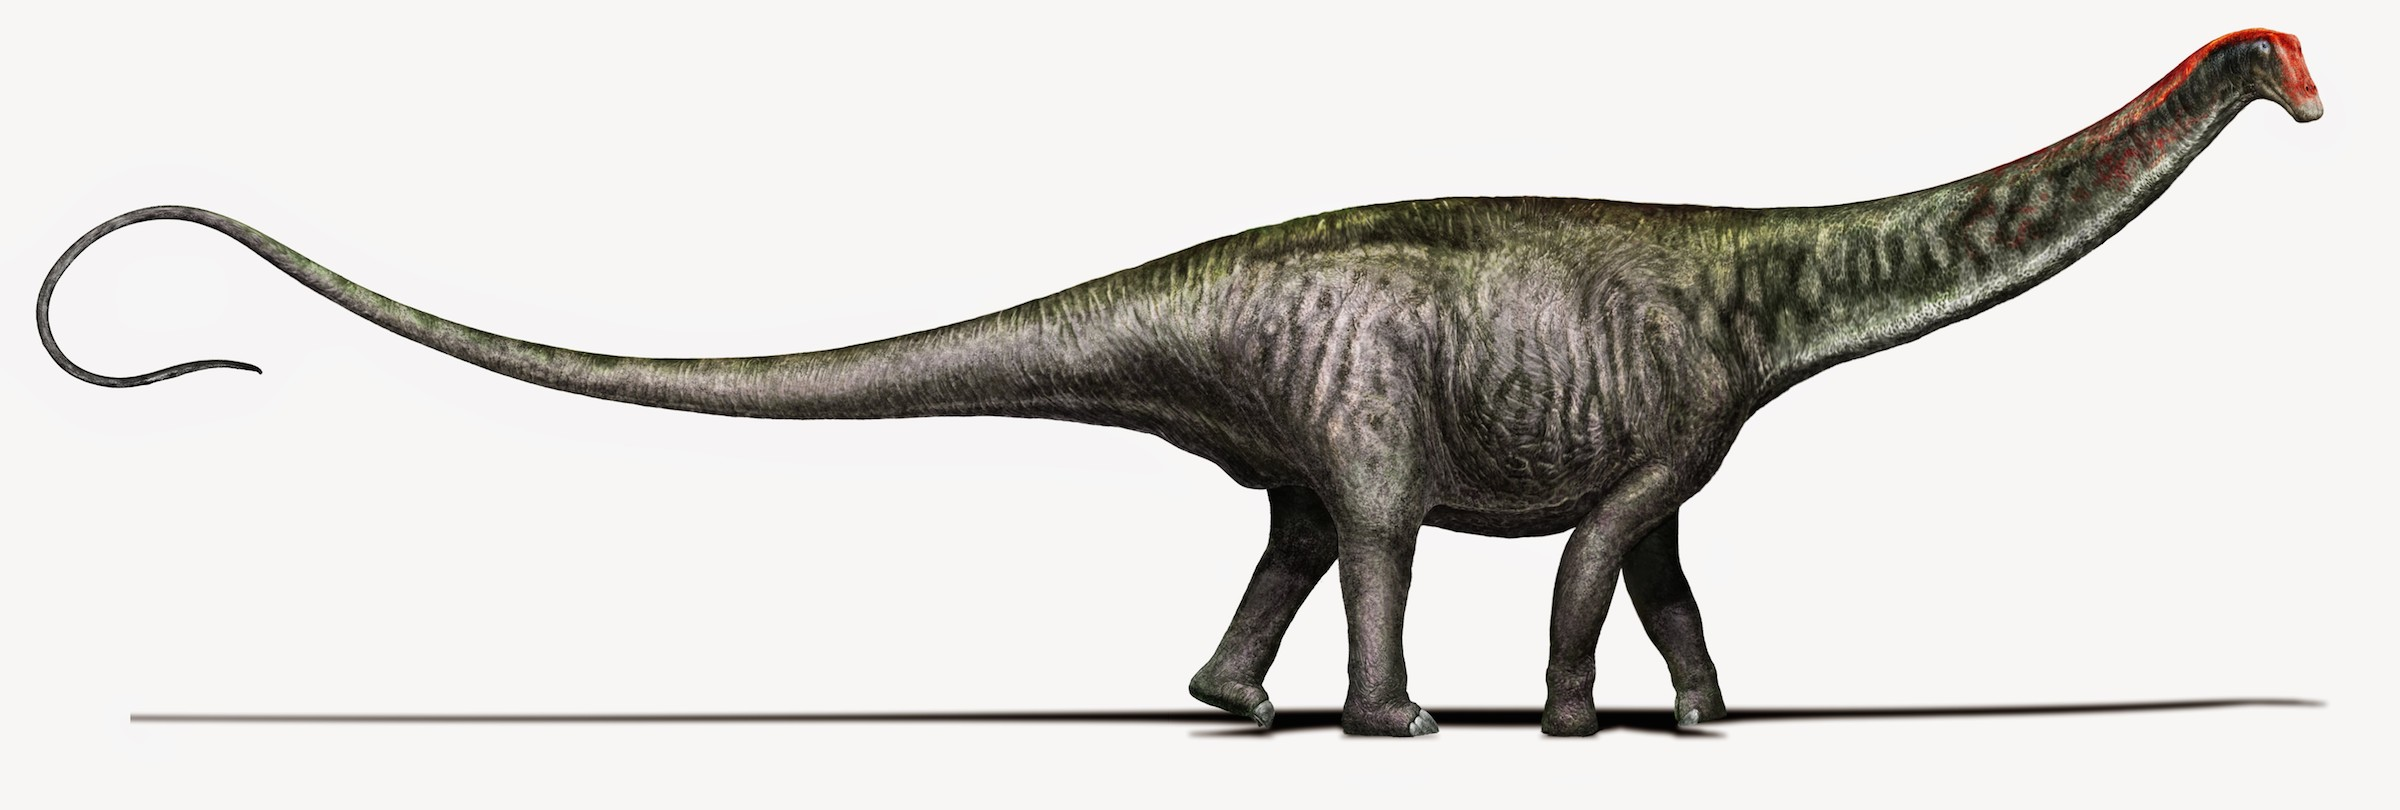 Brontosaurus is back!